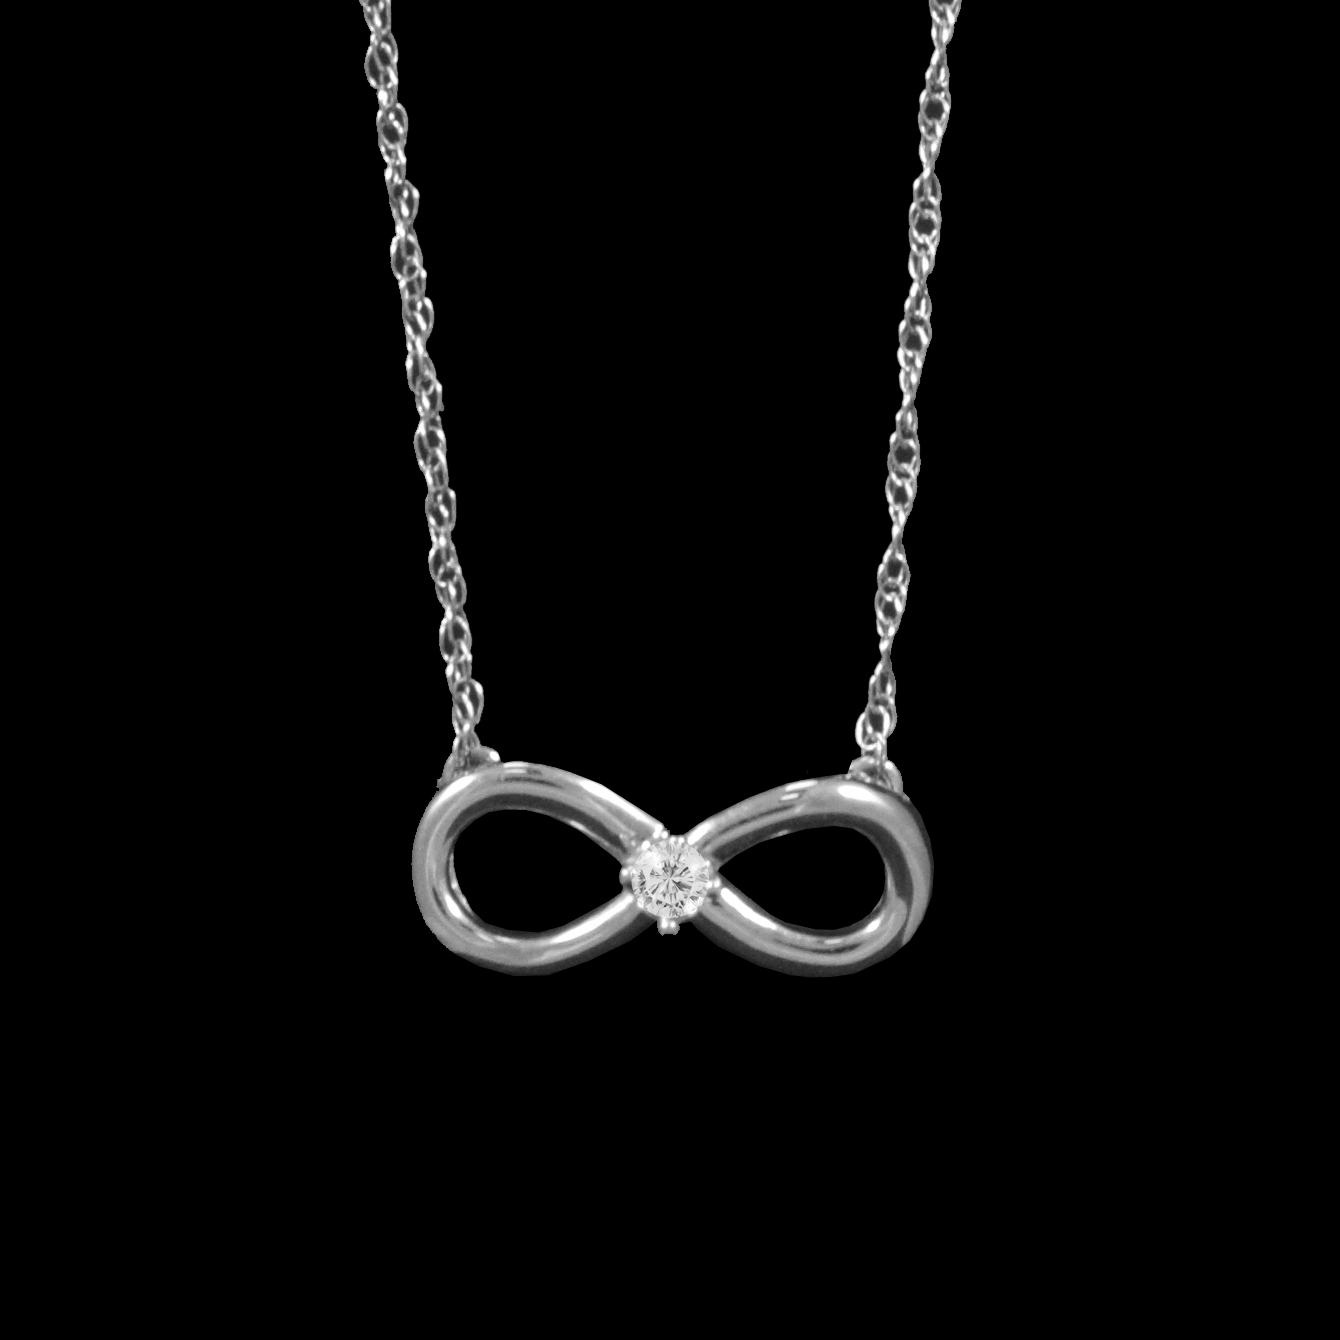 infinity necklace white gold. white gold infinity necklace c